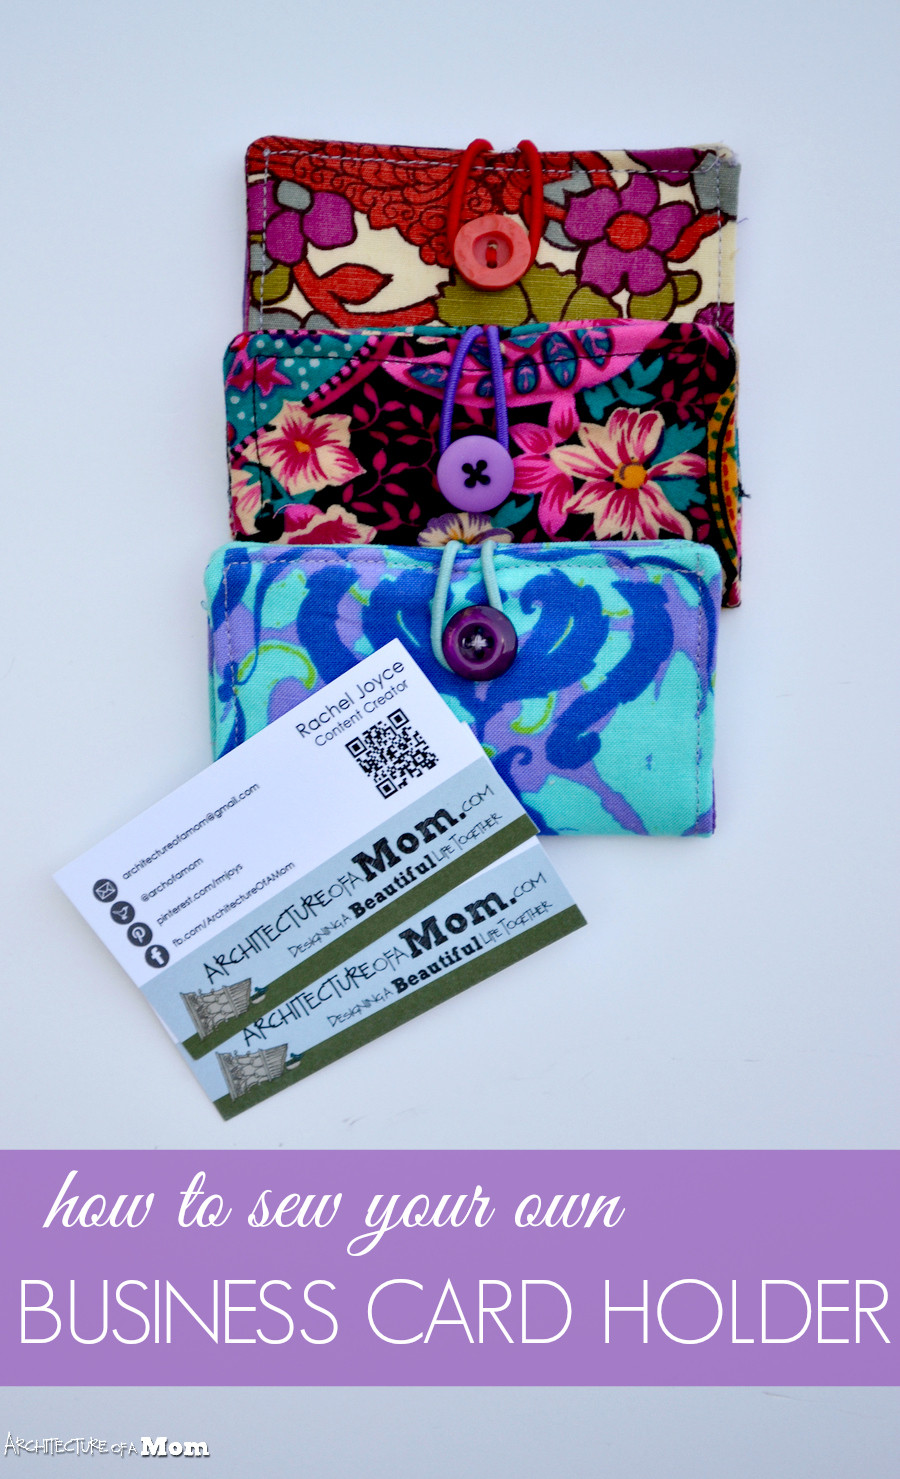 Best ideas about DIY Business Card Holder . Save or Pin Architecture of a Mom How to Sew A Business Card Holder Now.